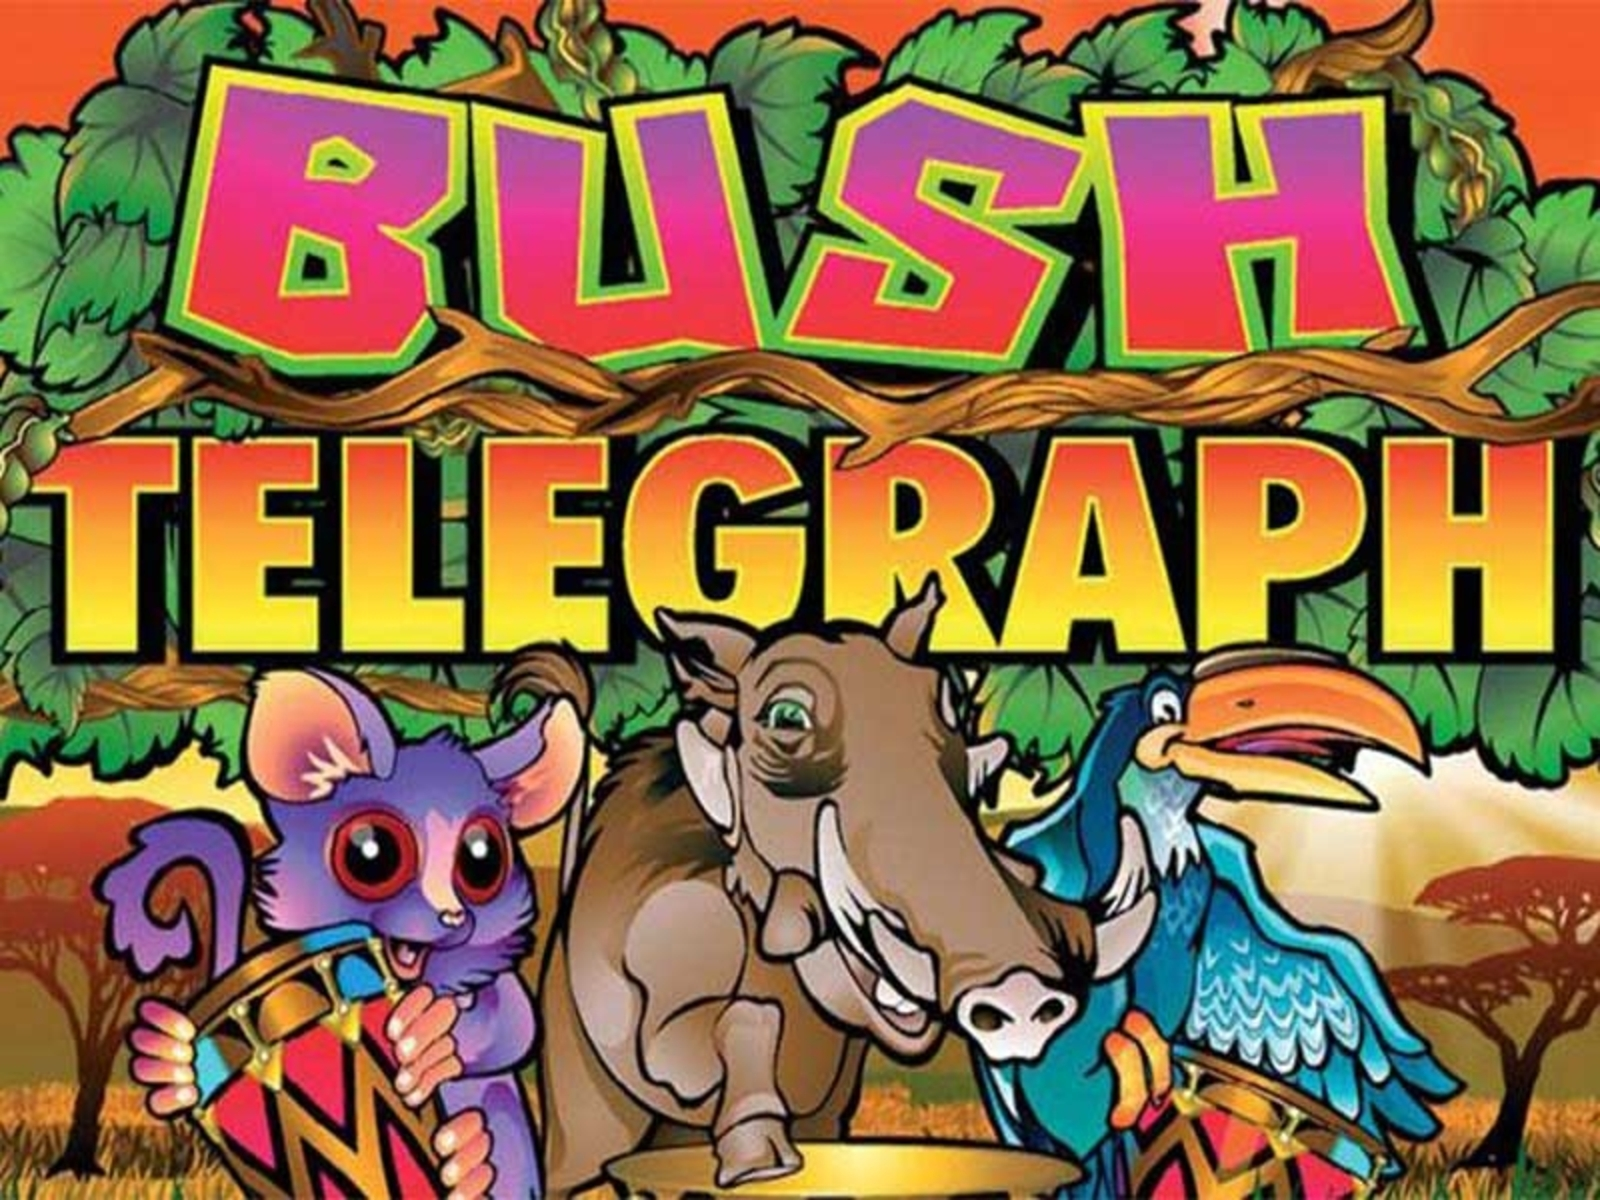 Se Bush Telegraph Online Slot Demo Game, Microgaming